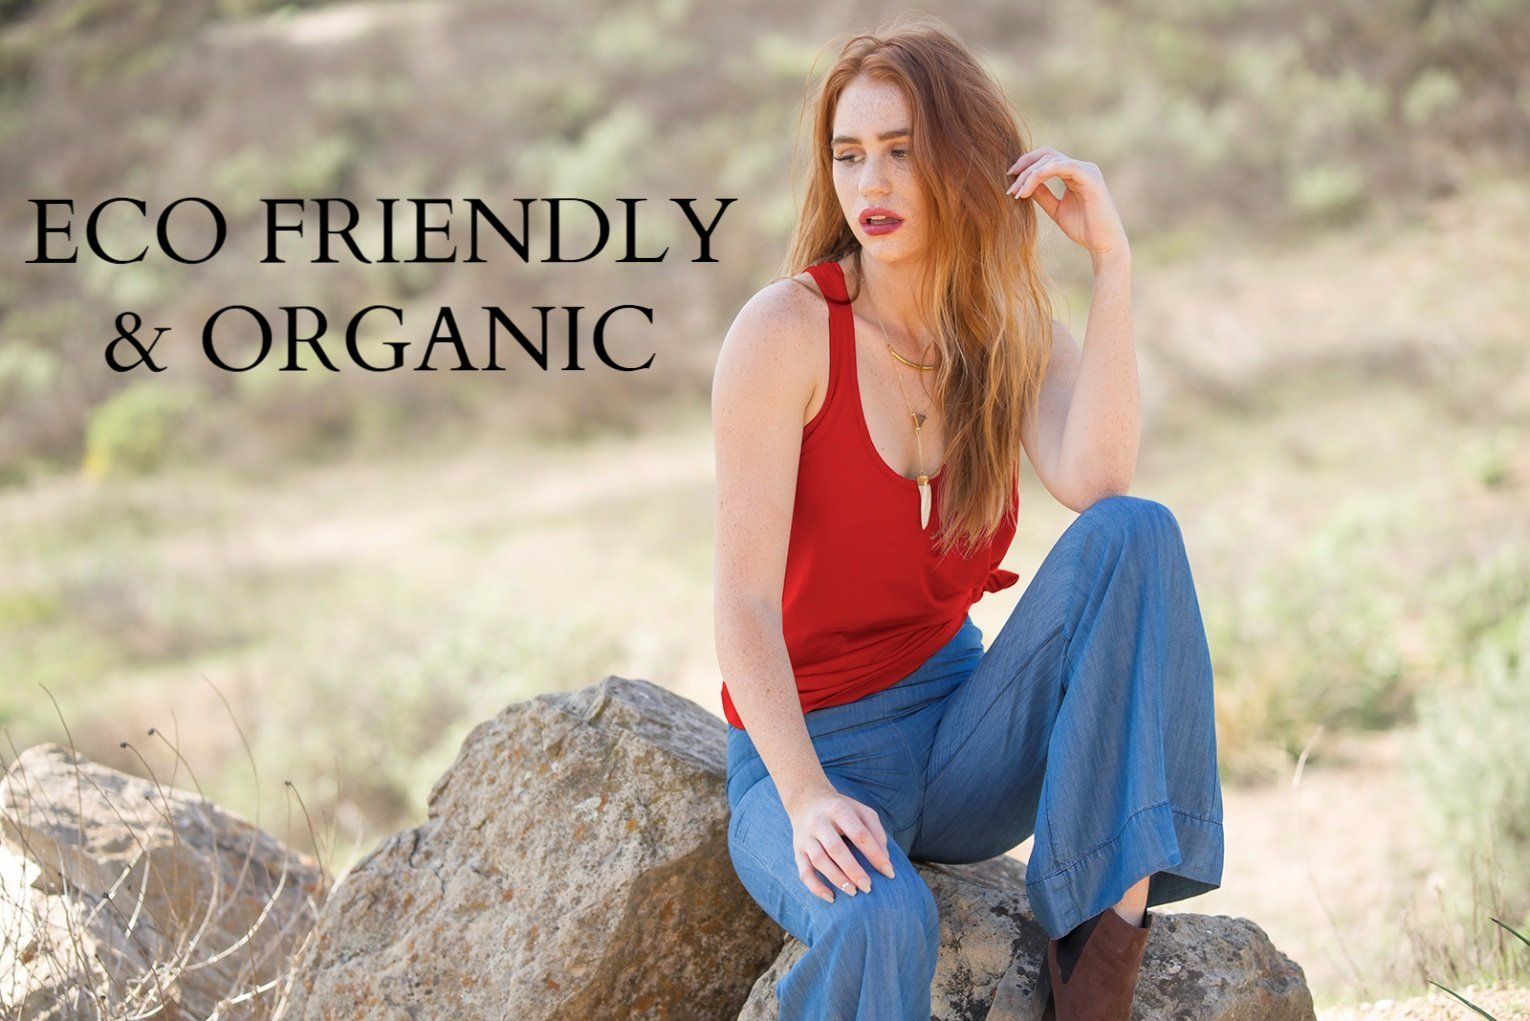 c68d29bd7d4e3 Our Eco Collection exclusively features Micro-Modal fabric. This extremely  soft textile is comprised of cellulosic fibers, which are derived from  renewable ...